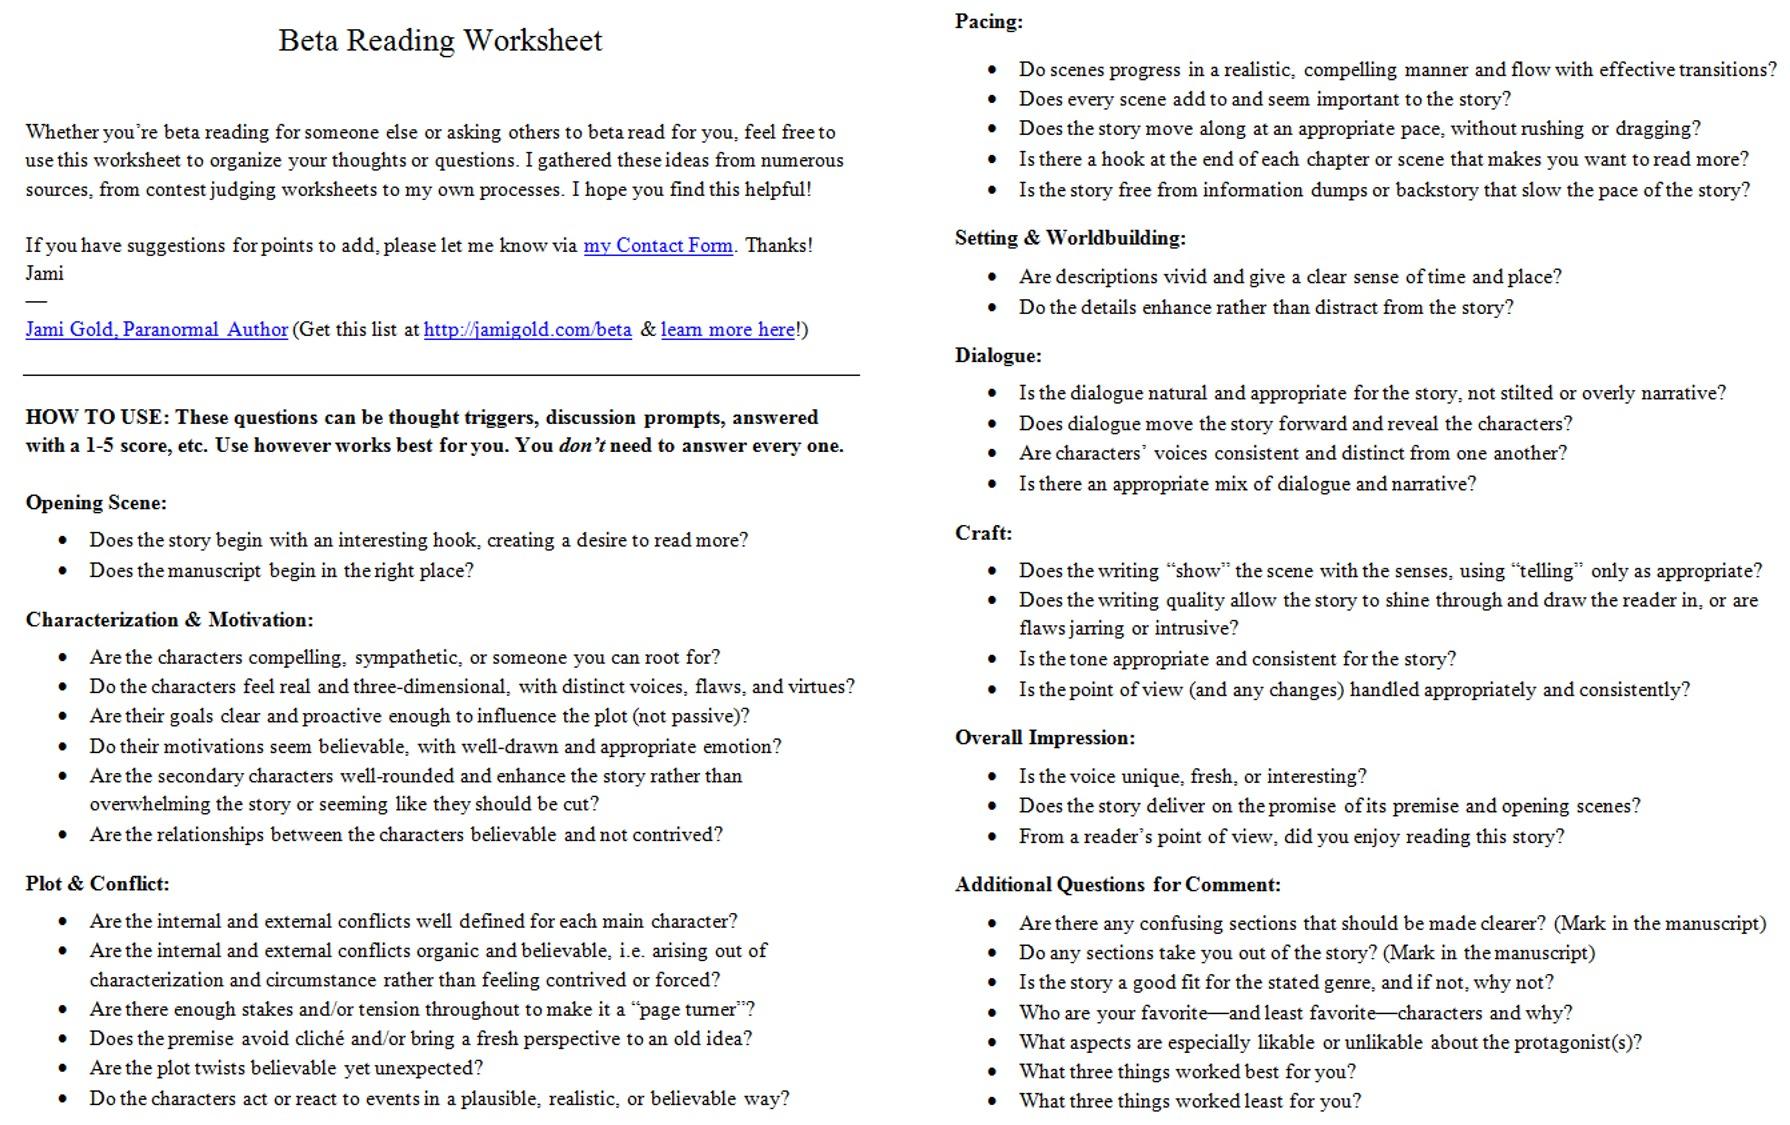 Weirdmailus  Wonderful Worksheets For Writers  Jami Gold Paranormal Author With Goodlooking Screen Shot Of The Twopage Beta Reading Worksheet With Extraordinary Nonfiction Text Features Worksheet Rd Grade Also Handwriting Worksheets Nd Grade In Addition Budget Worksheets Excel And Graphing Data Worksheet As Well As Quotation Worksheet Additionally Counting  Worksheets From Jamigoldcom With Weirdmailus  Goodlooking Worksheets For Writers  Jami Gold Paranormal Author With Extraordinary Screen Shot Of The Twopage Beta Reading Worksheet And Wonderful Nonfiction Text Features Worksheet Rd Grade Also Handwriting Worksheets Nd Grade In Addition Budget Worksheets Excel From Jamigoldcom